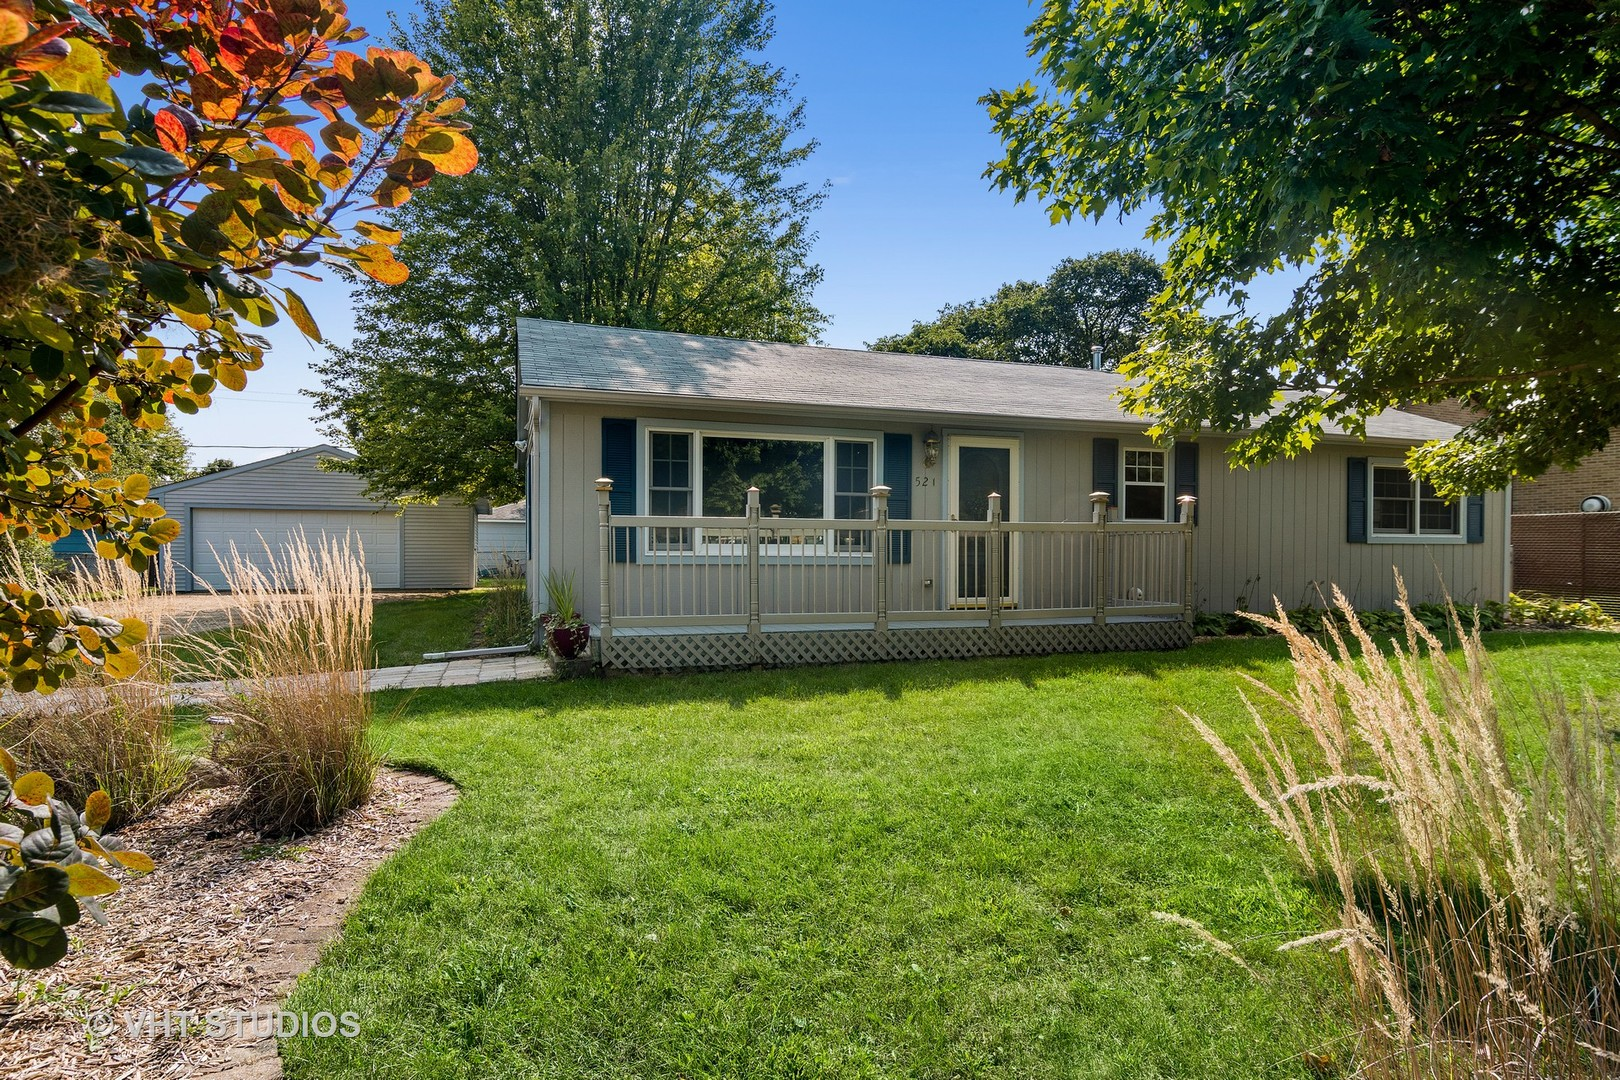 Photo for 521 Spring Avenue, South Elgin, IL 60177 (MLS # 10881274)